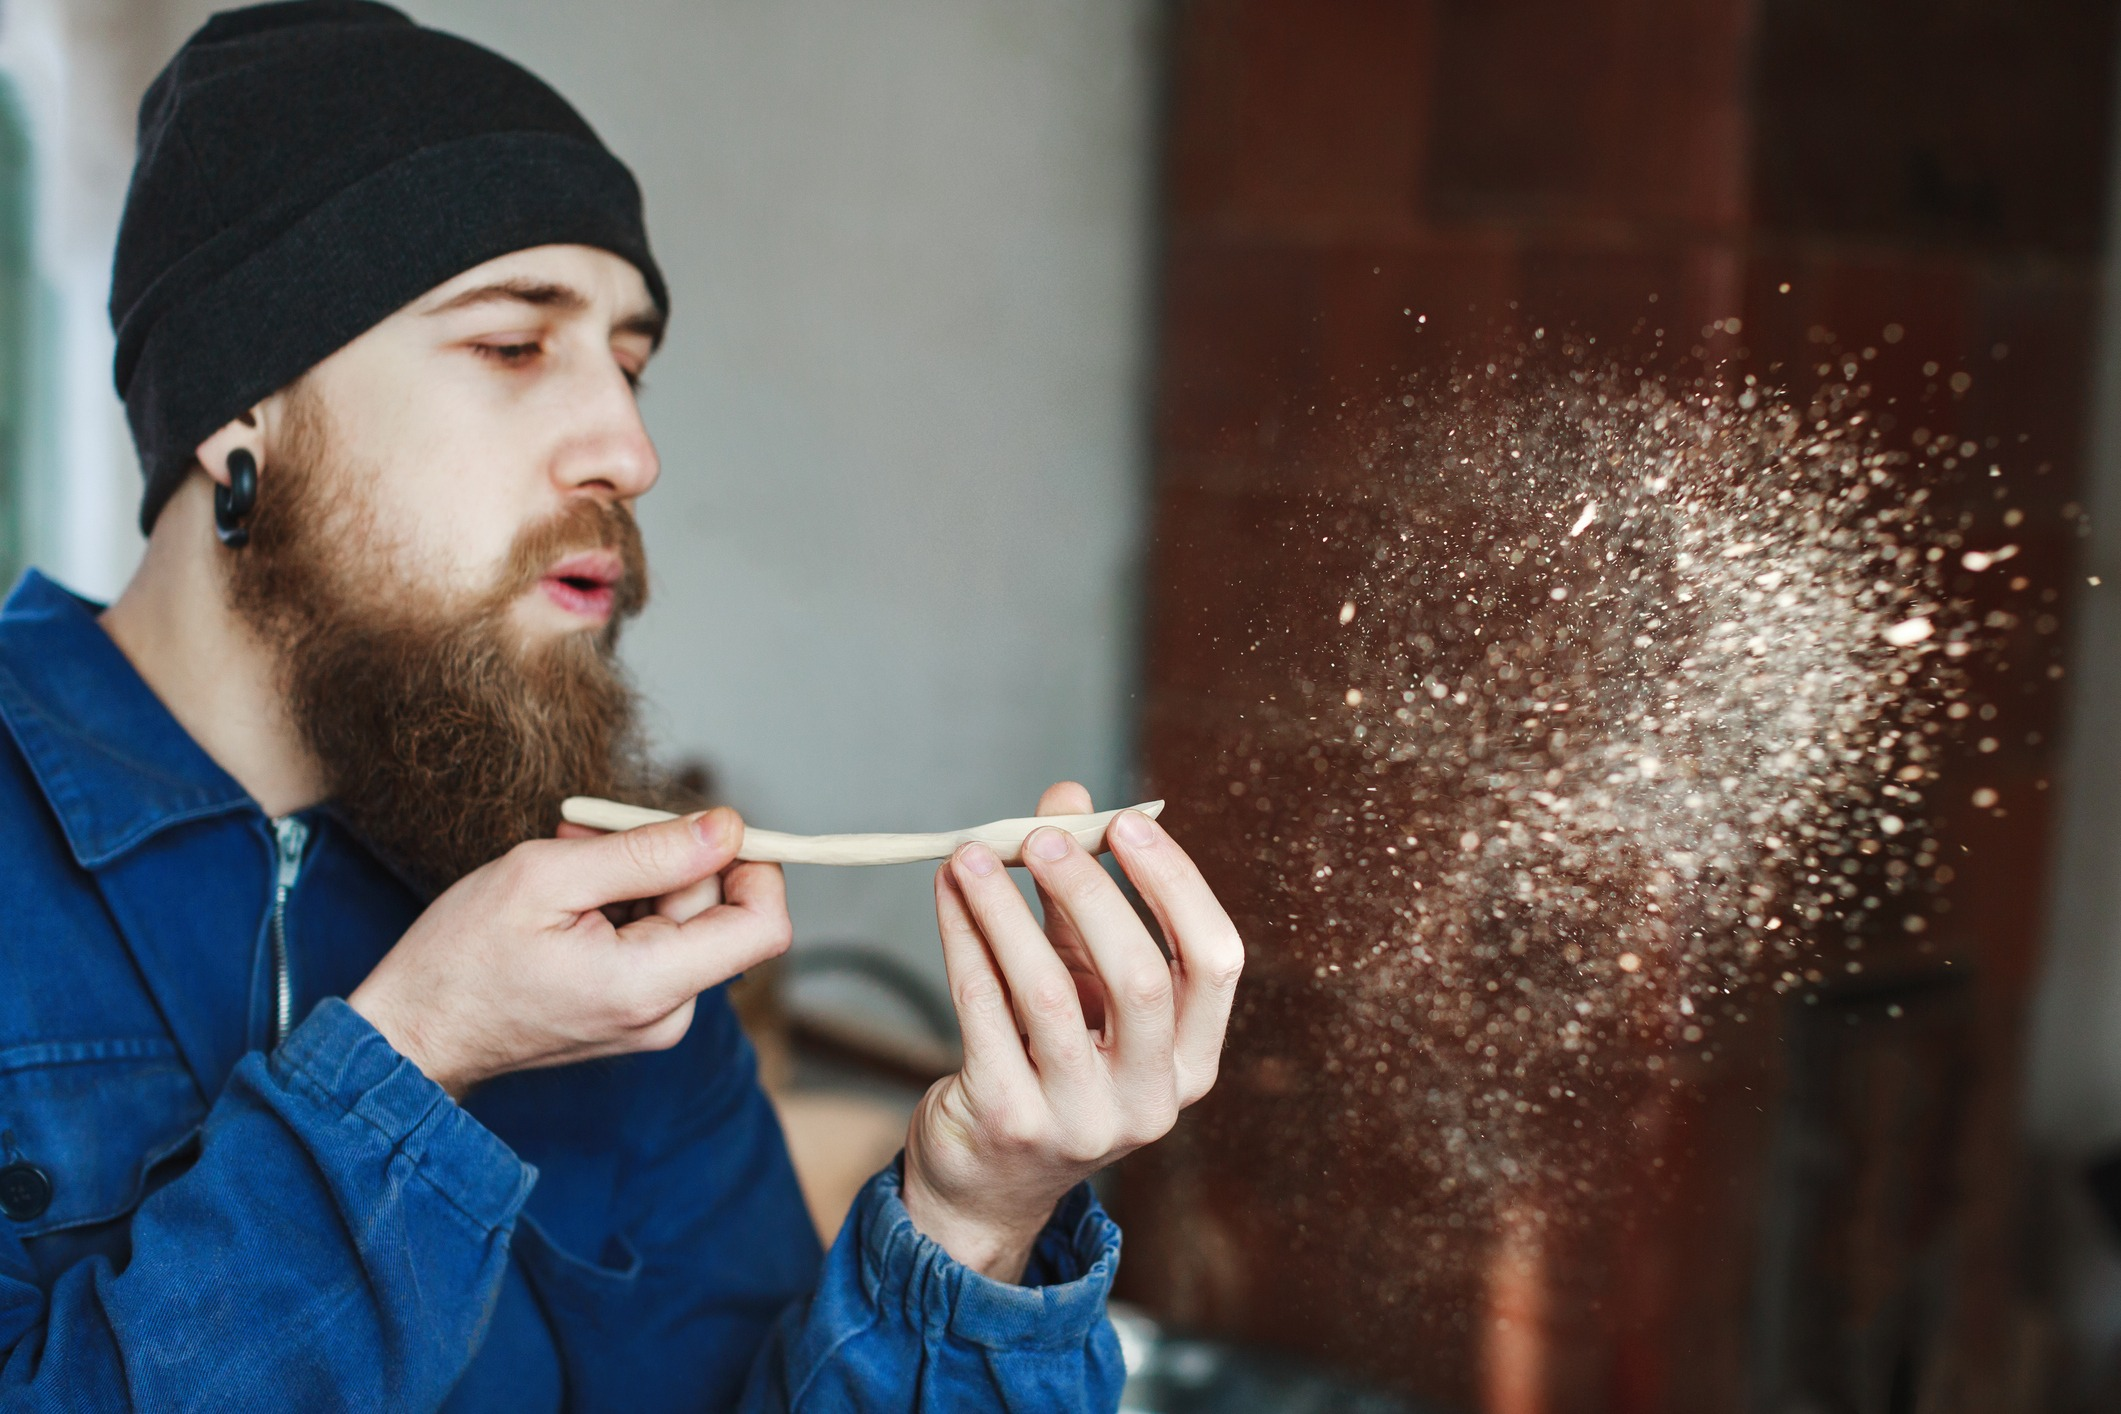 Man with a beard wearing blue jeans suit and black hat holding wooden spoon and blowing dust